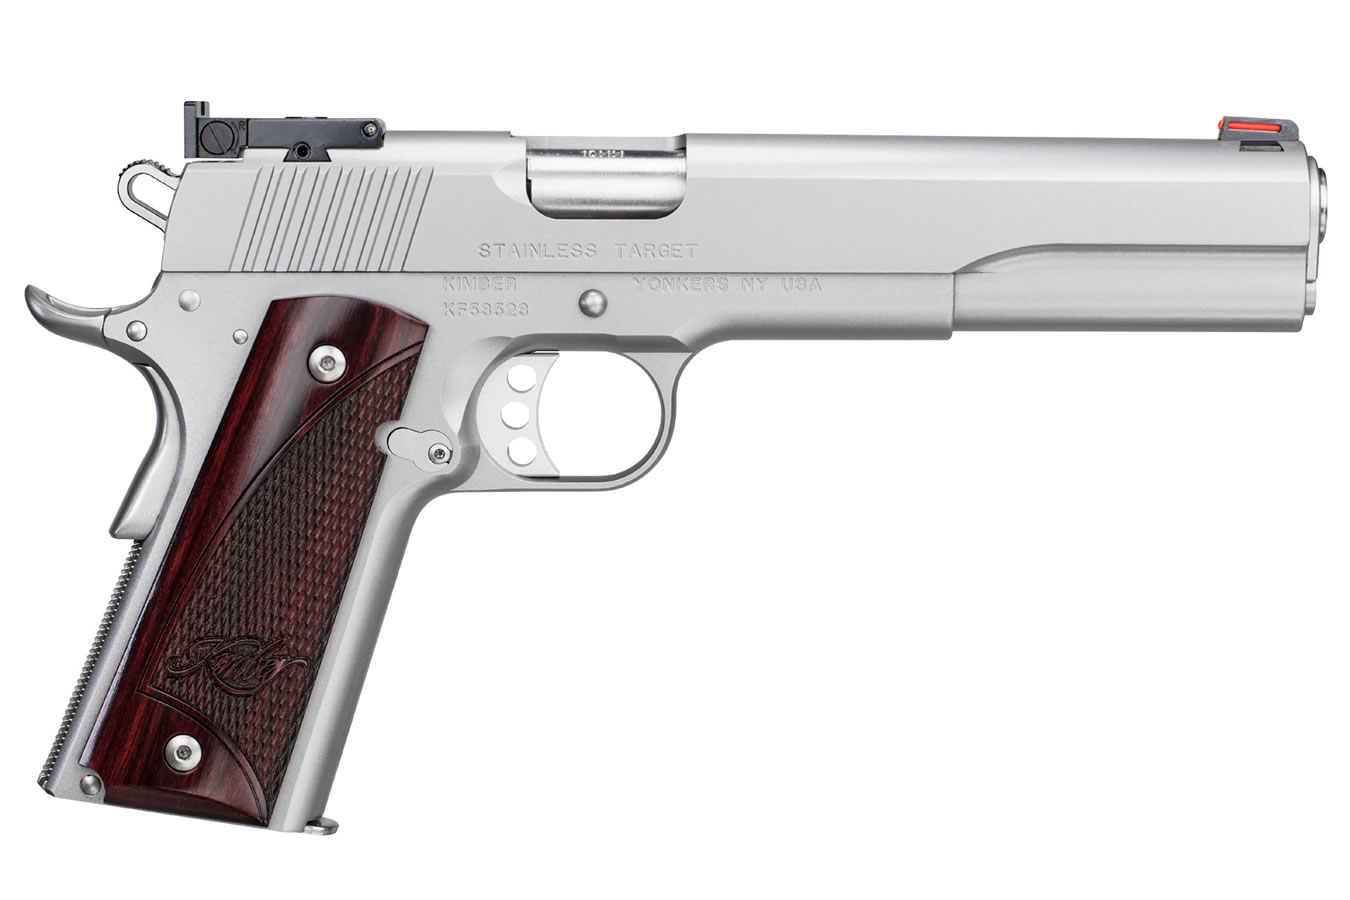 STAINLESS TARGET (LS) 45 ACP